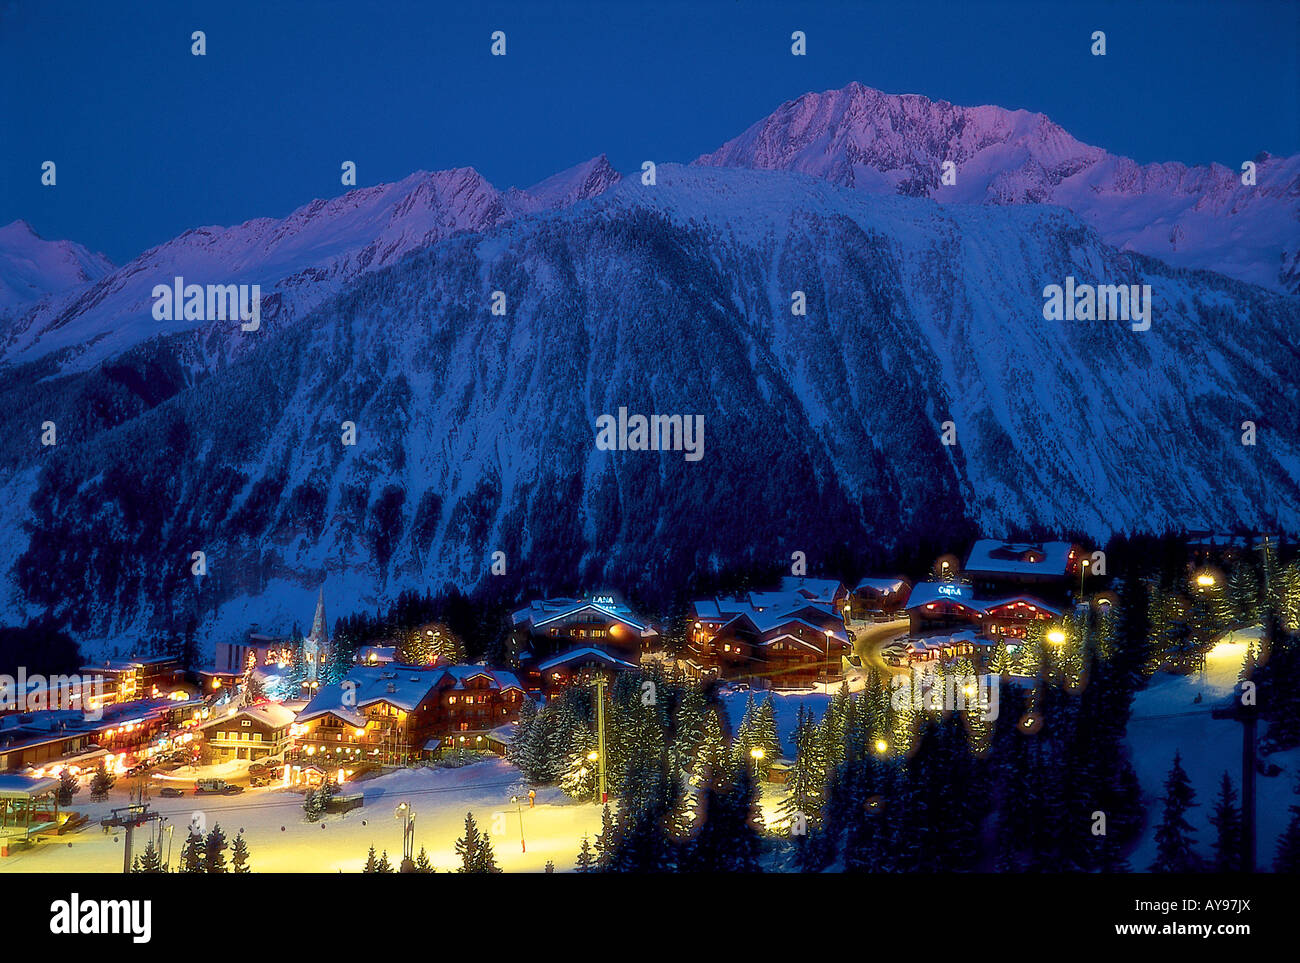 VIEW OF FLOODLIT COURCHEVEL 1850 AT NIGHT, 3 VALLEYS, TROIS VALLEES, FRANCE - Stock Image